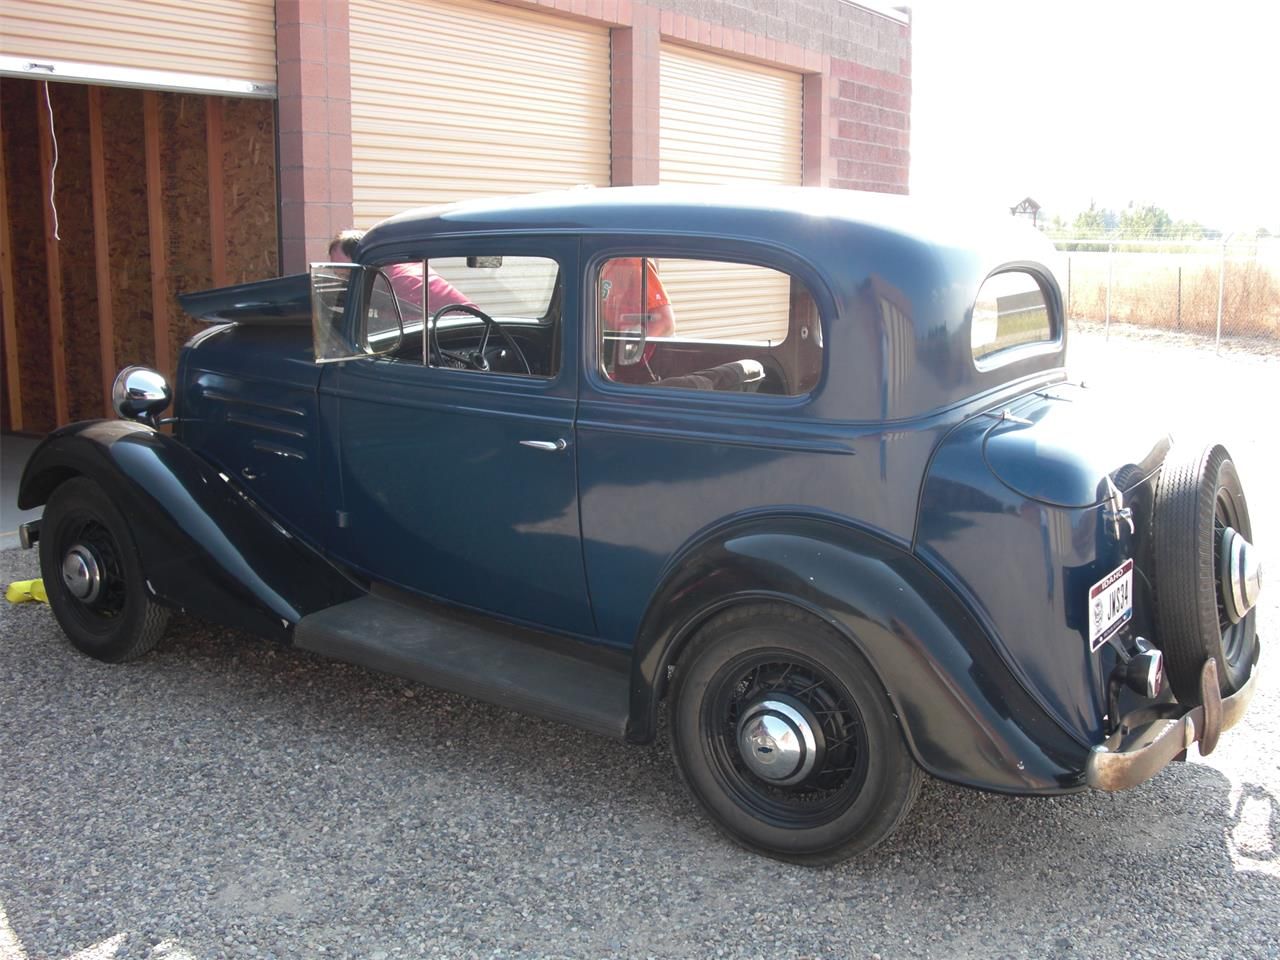 1934 Chevrolet Master for sale in Rigby, ID – photo 2